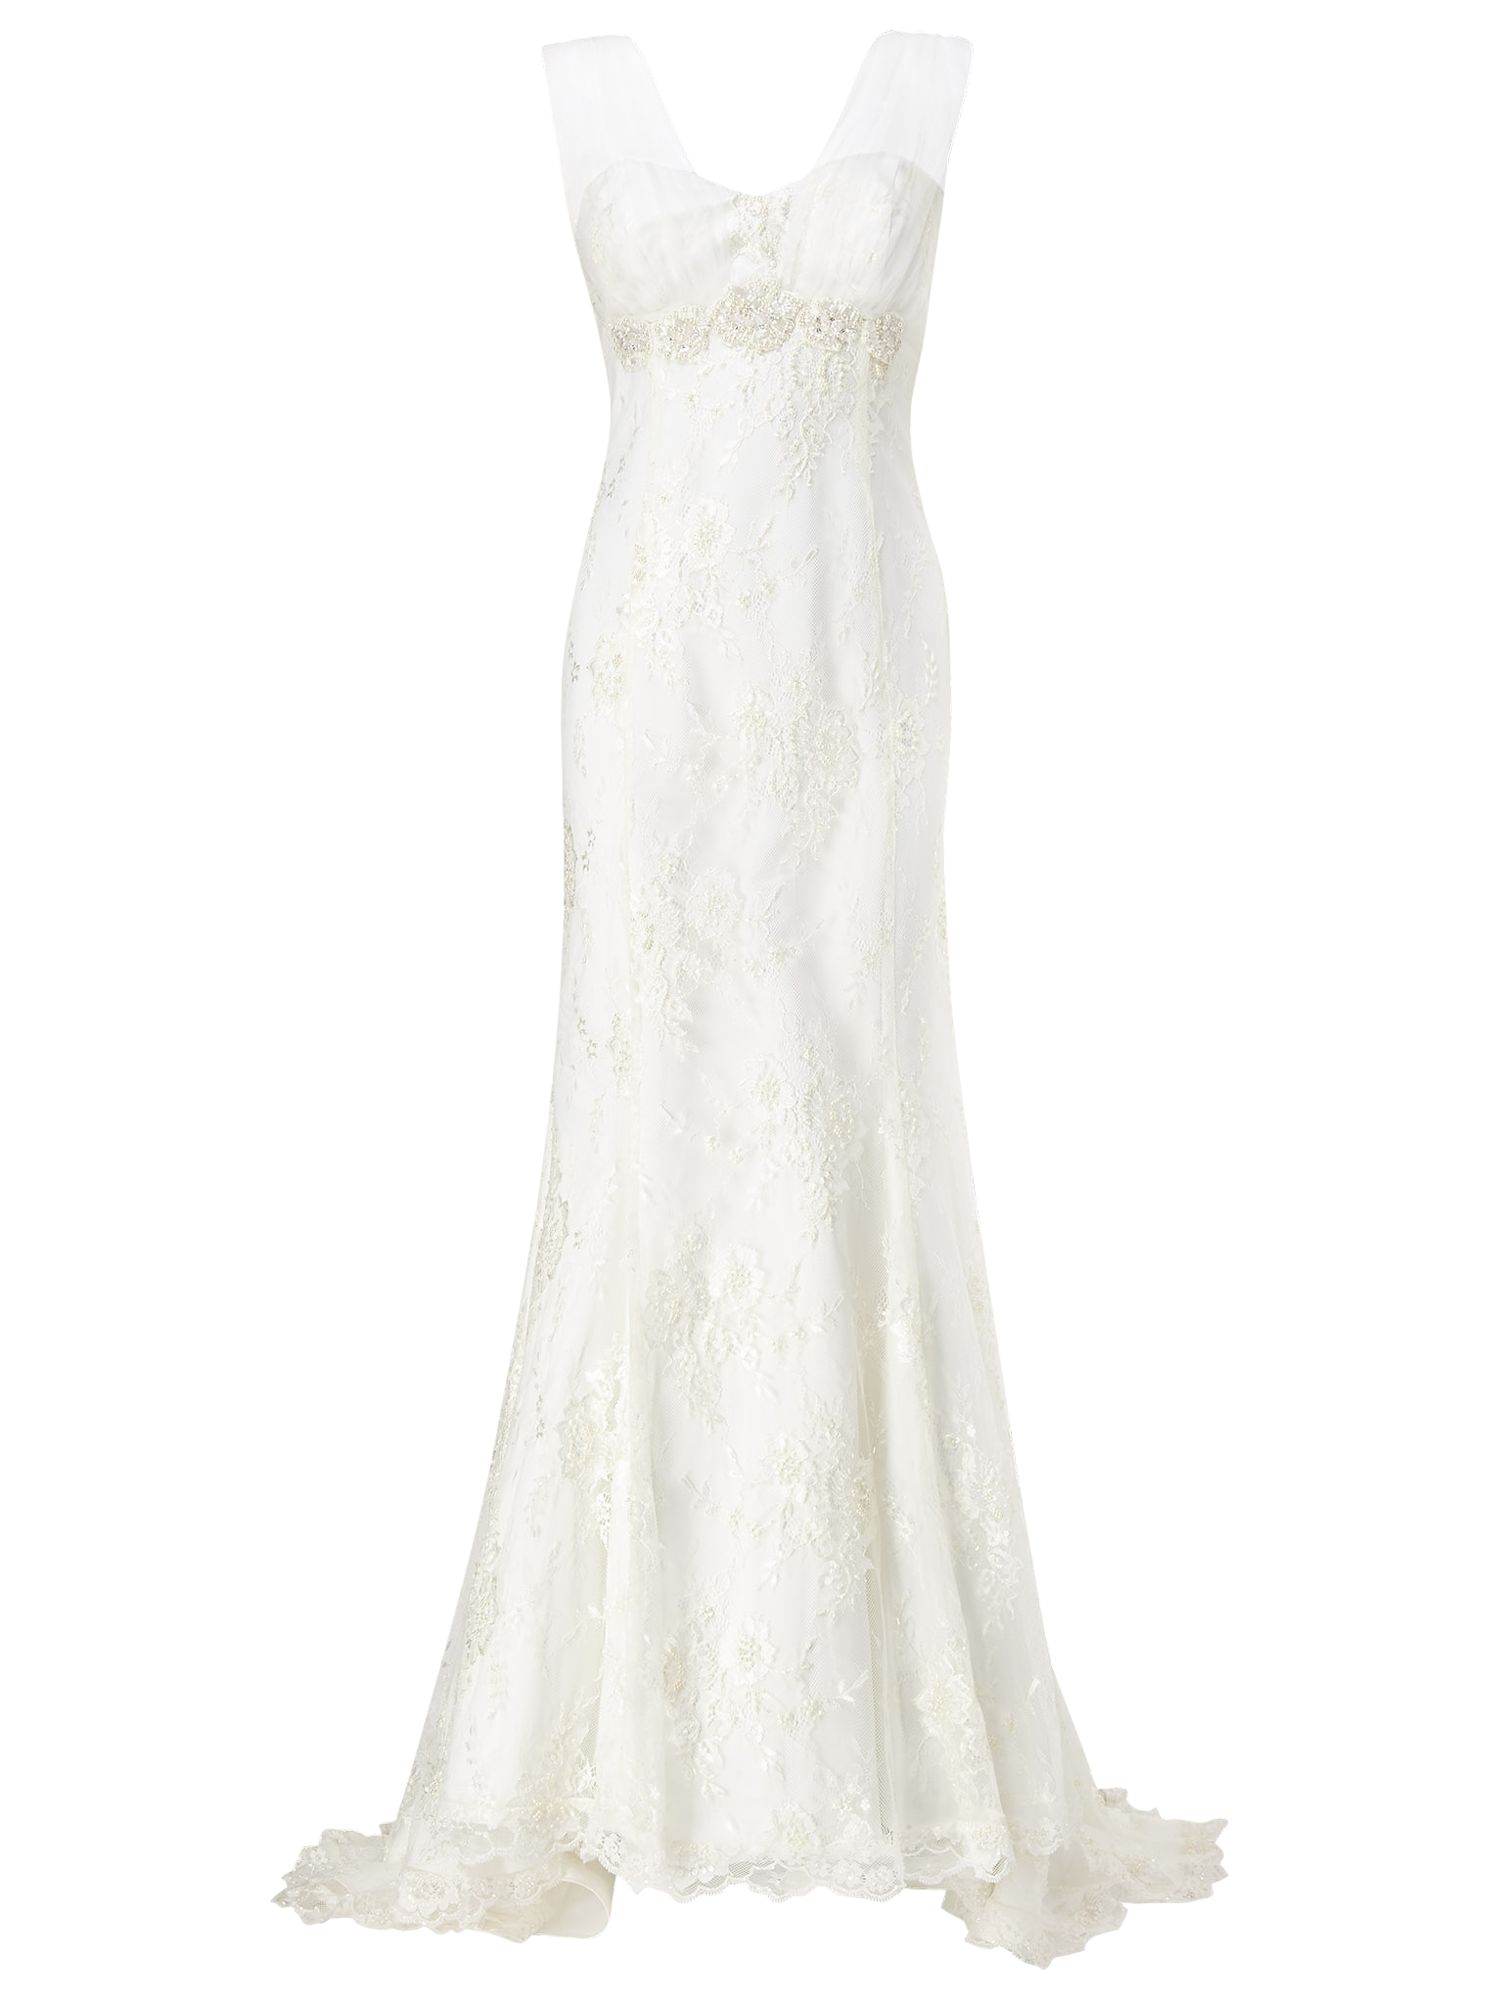 phase eight bridal elodie wedding dress ivory, phase, eight, bridal, elodie, wedding, dress, ivory, phase eight bridal, clearance, womenswear offers, womens dresses offers, women, inactive womenswear, new reductions, womens dresses, special offers, fashion magazine, phase eight, brands l-z, 1113357